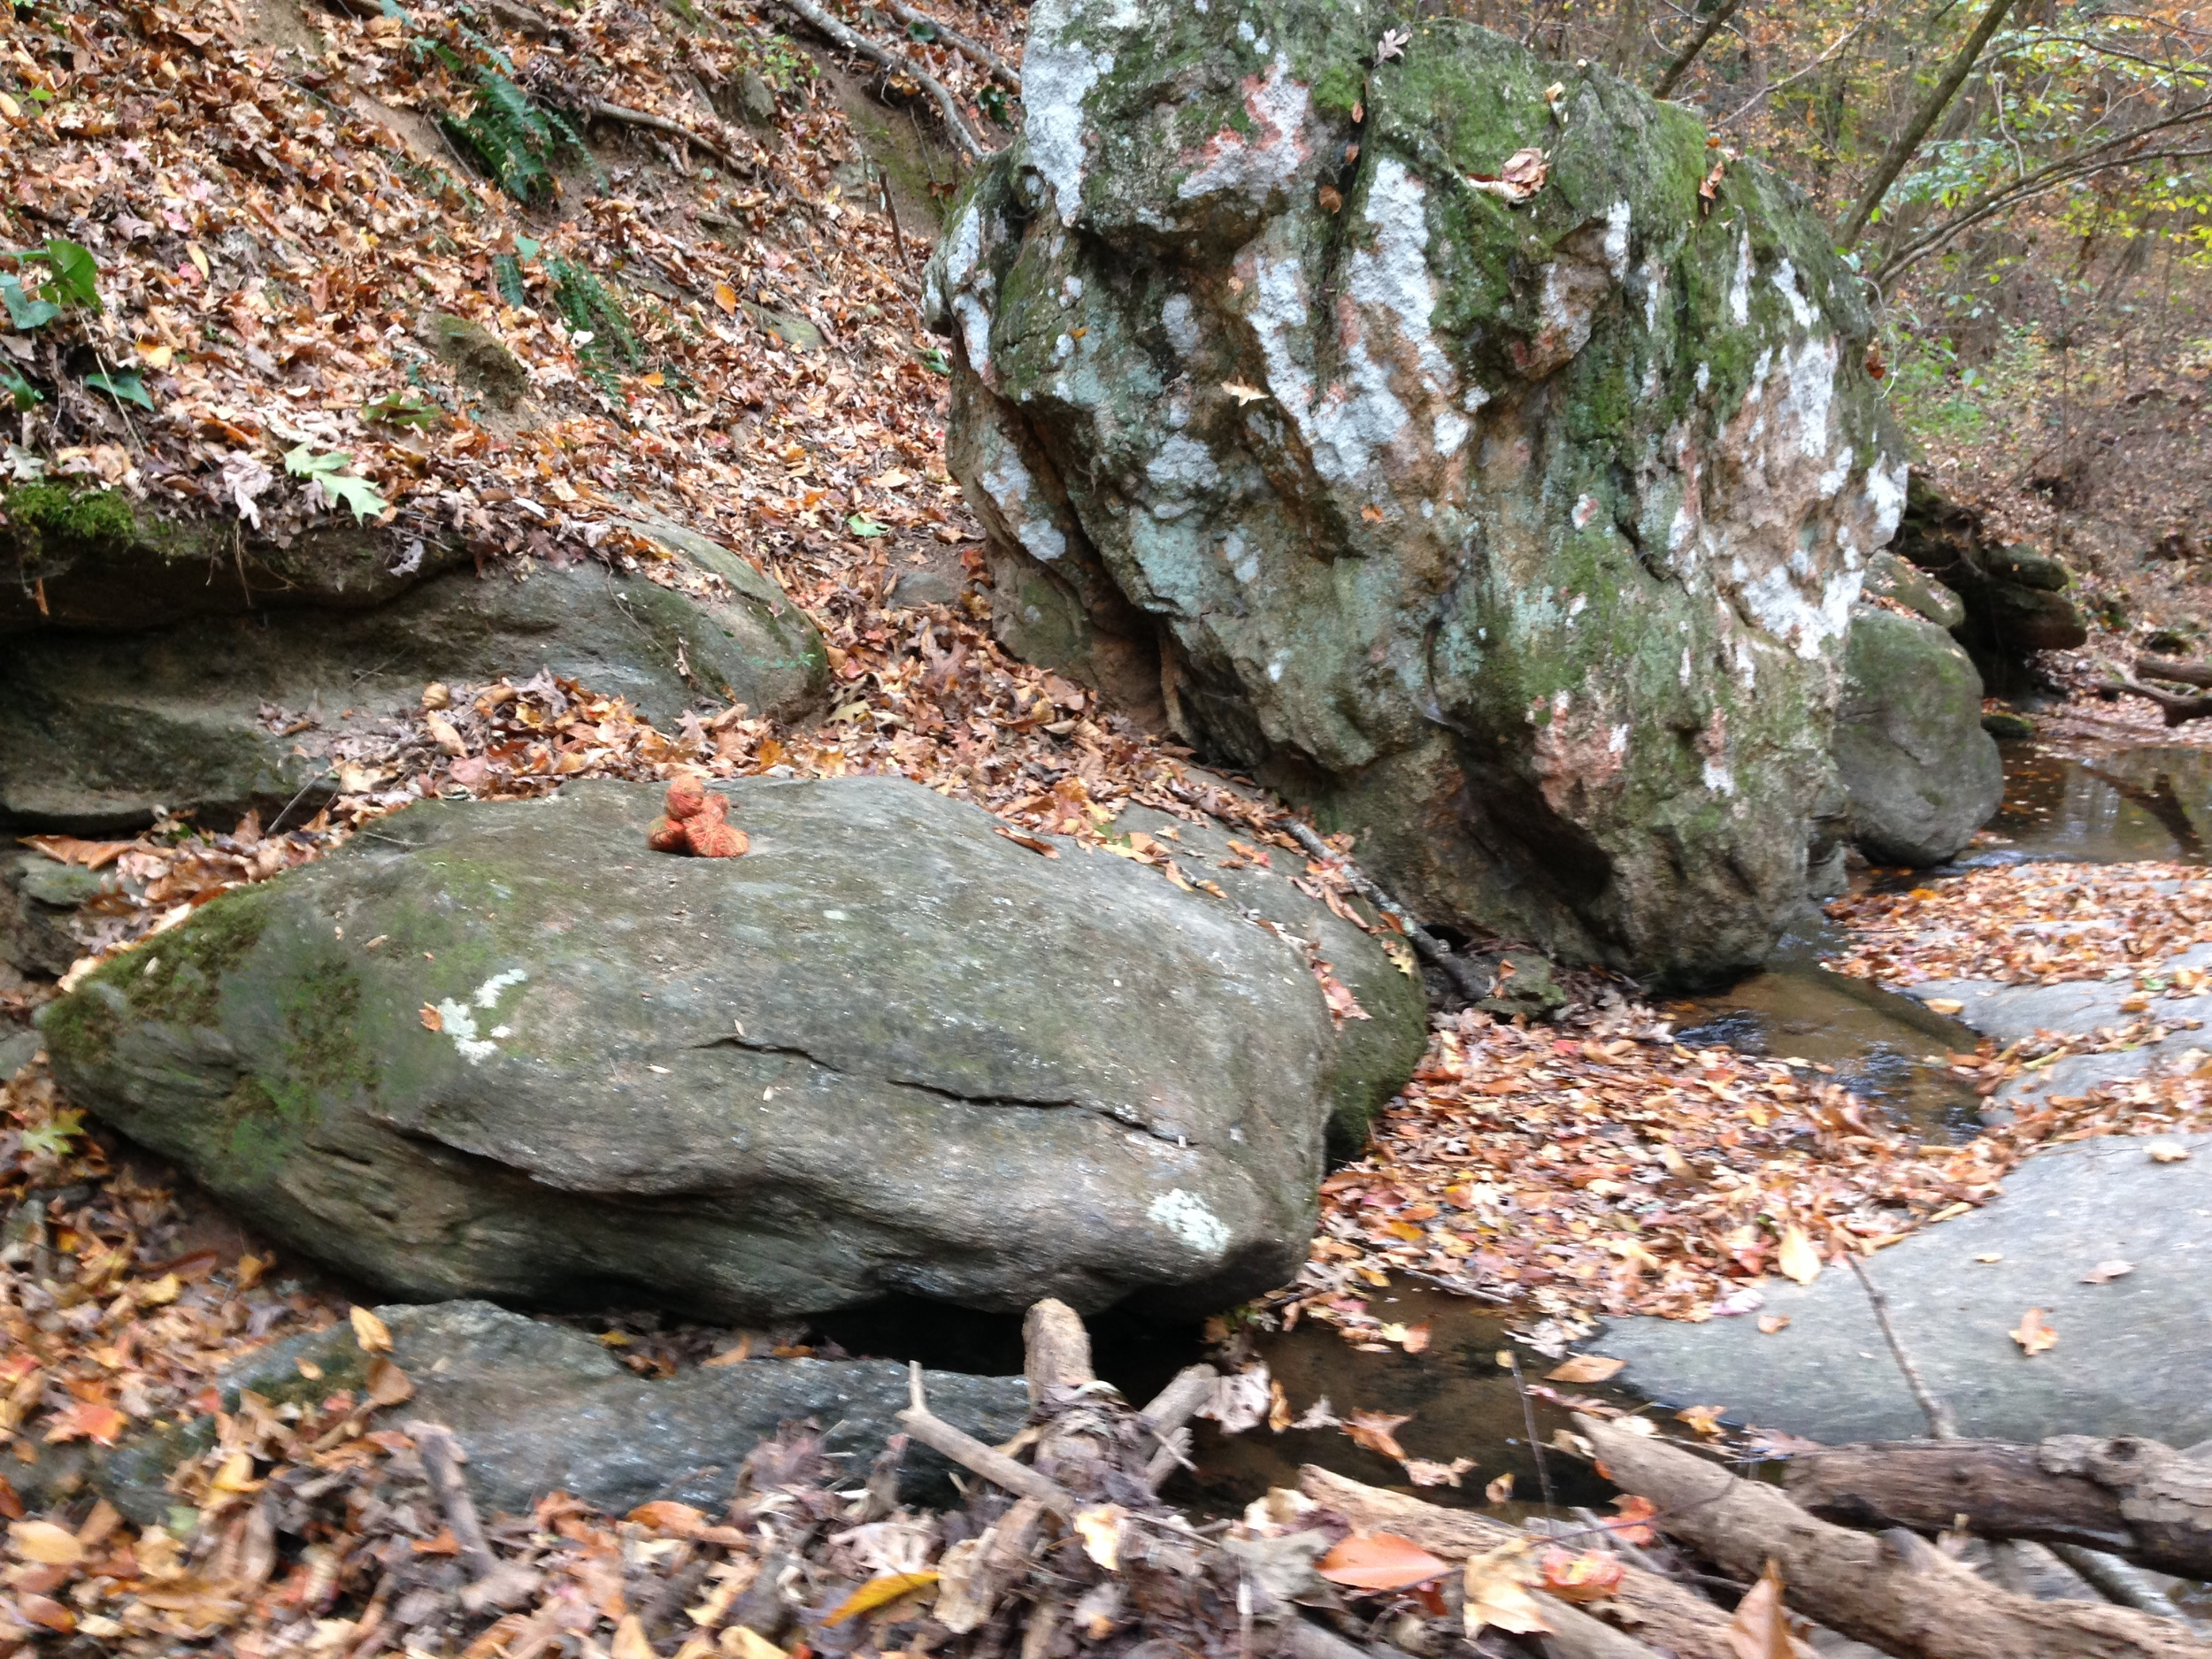 Stones wrapped in yarn on boulder. Athens, GA. Fall 2013